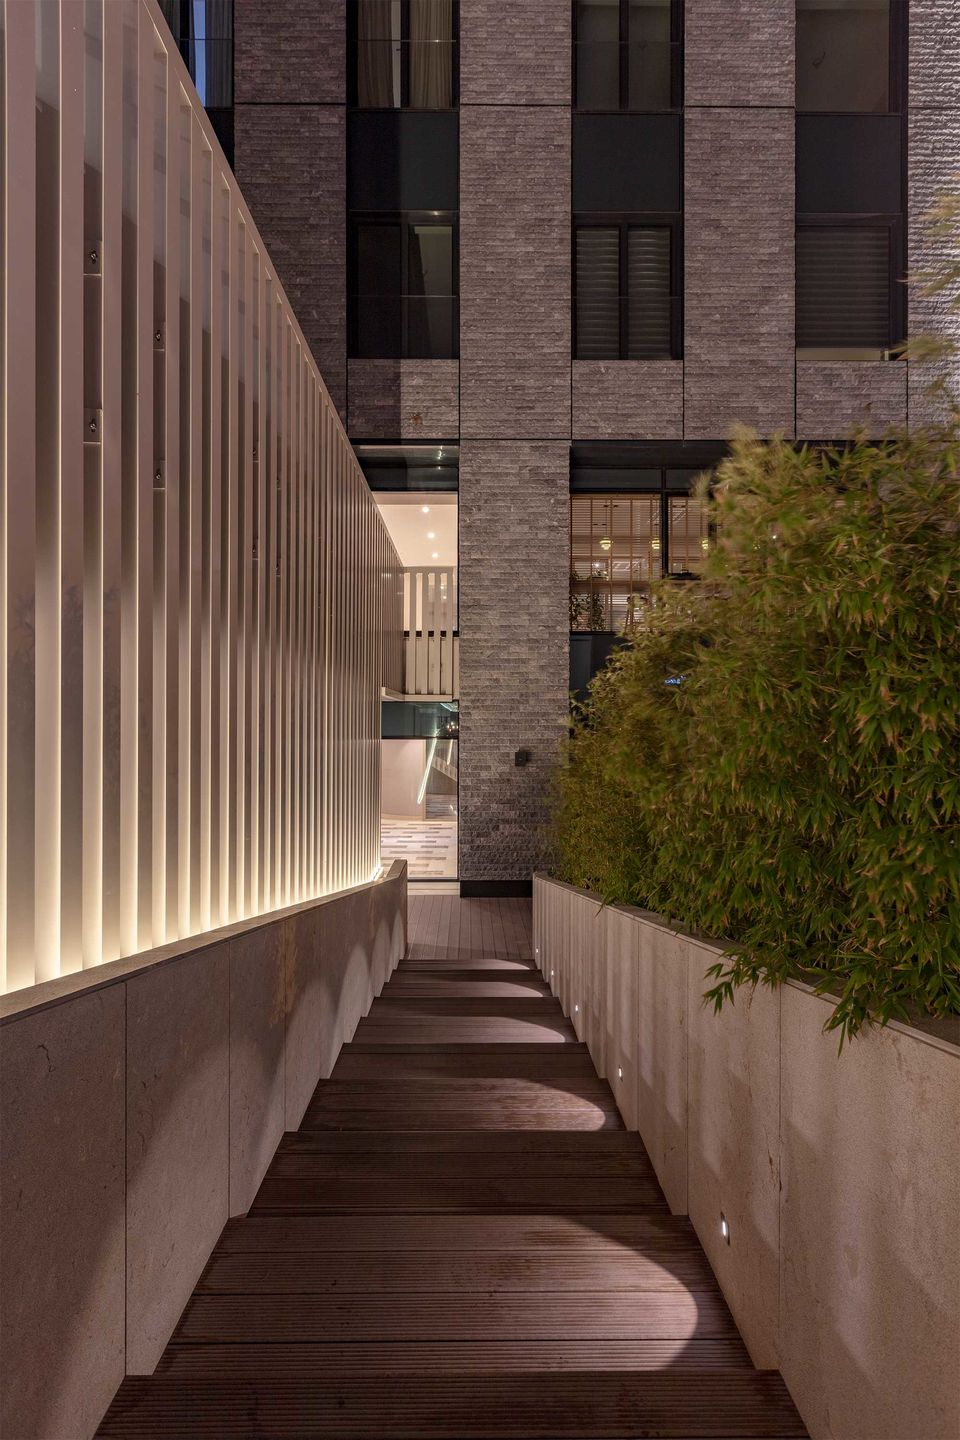 Nurol Life, Istanbul, Turkey. Project by Hakan Kiran Architecture. Light planning by ZKLD Light Design Studio